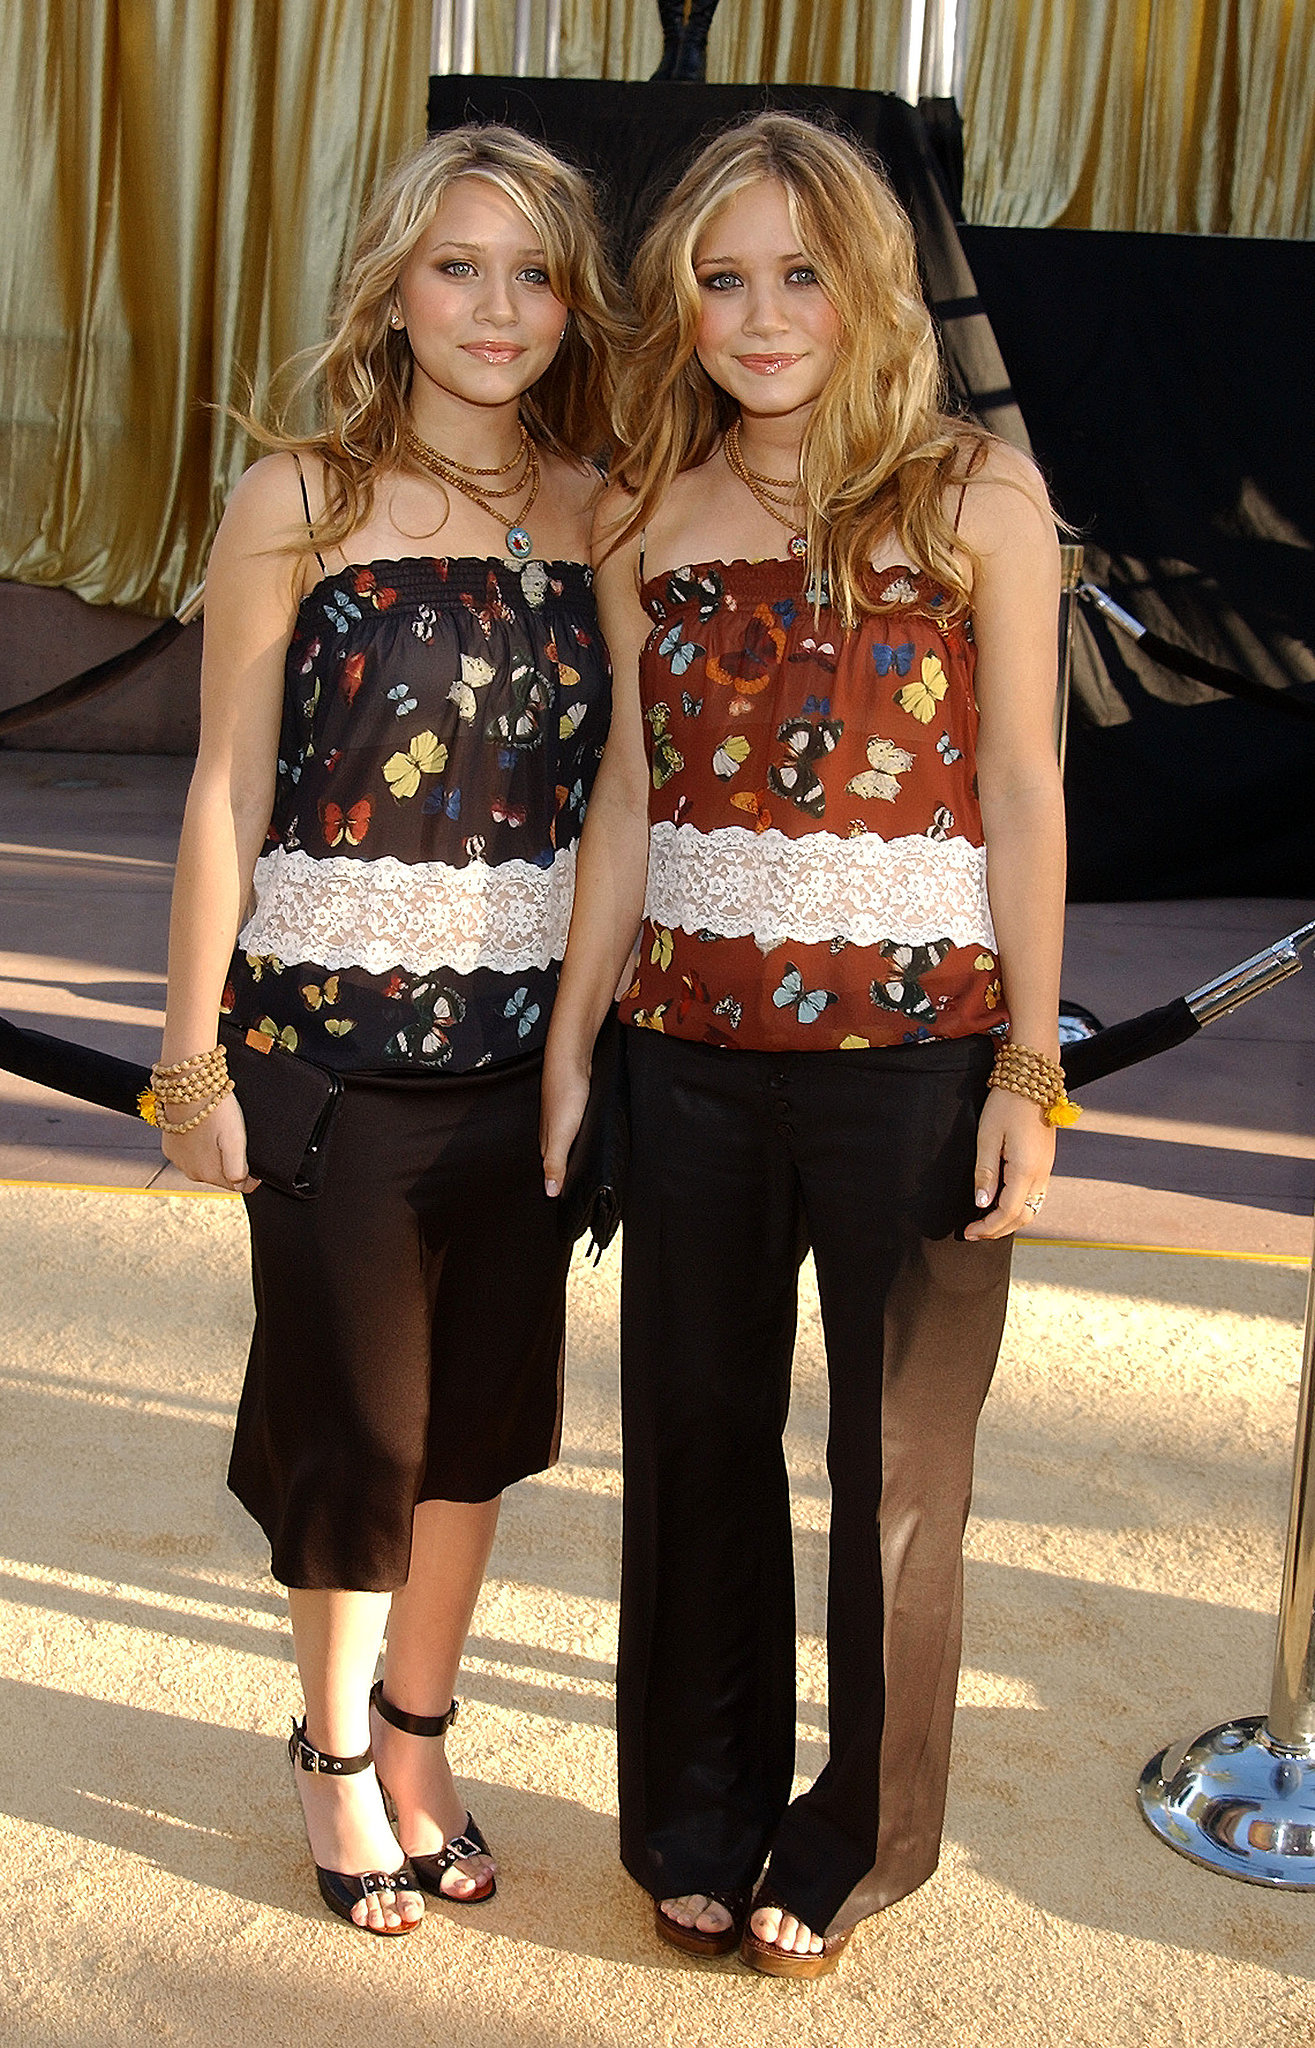 Twinning combo: For the 2002 LA premiere of Austin Powers in Goldmember, the Cali-cool combo styled their coordinating butterfly-print tops with black basics.  Ashley stuck with a dark palette, pairing her printed top with cropped black pants and buckle-accented sandals. Mary-Kate injected a pop of color via a burnt-orange blouse and a few beaded accessories.